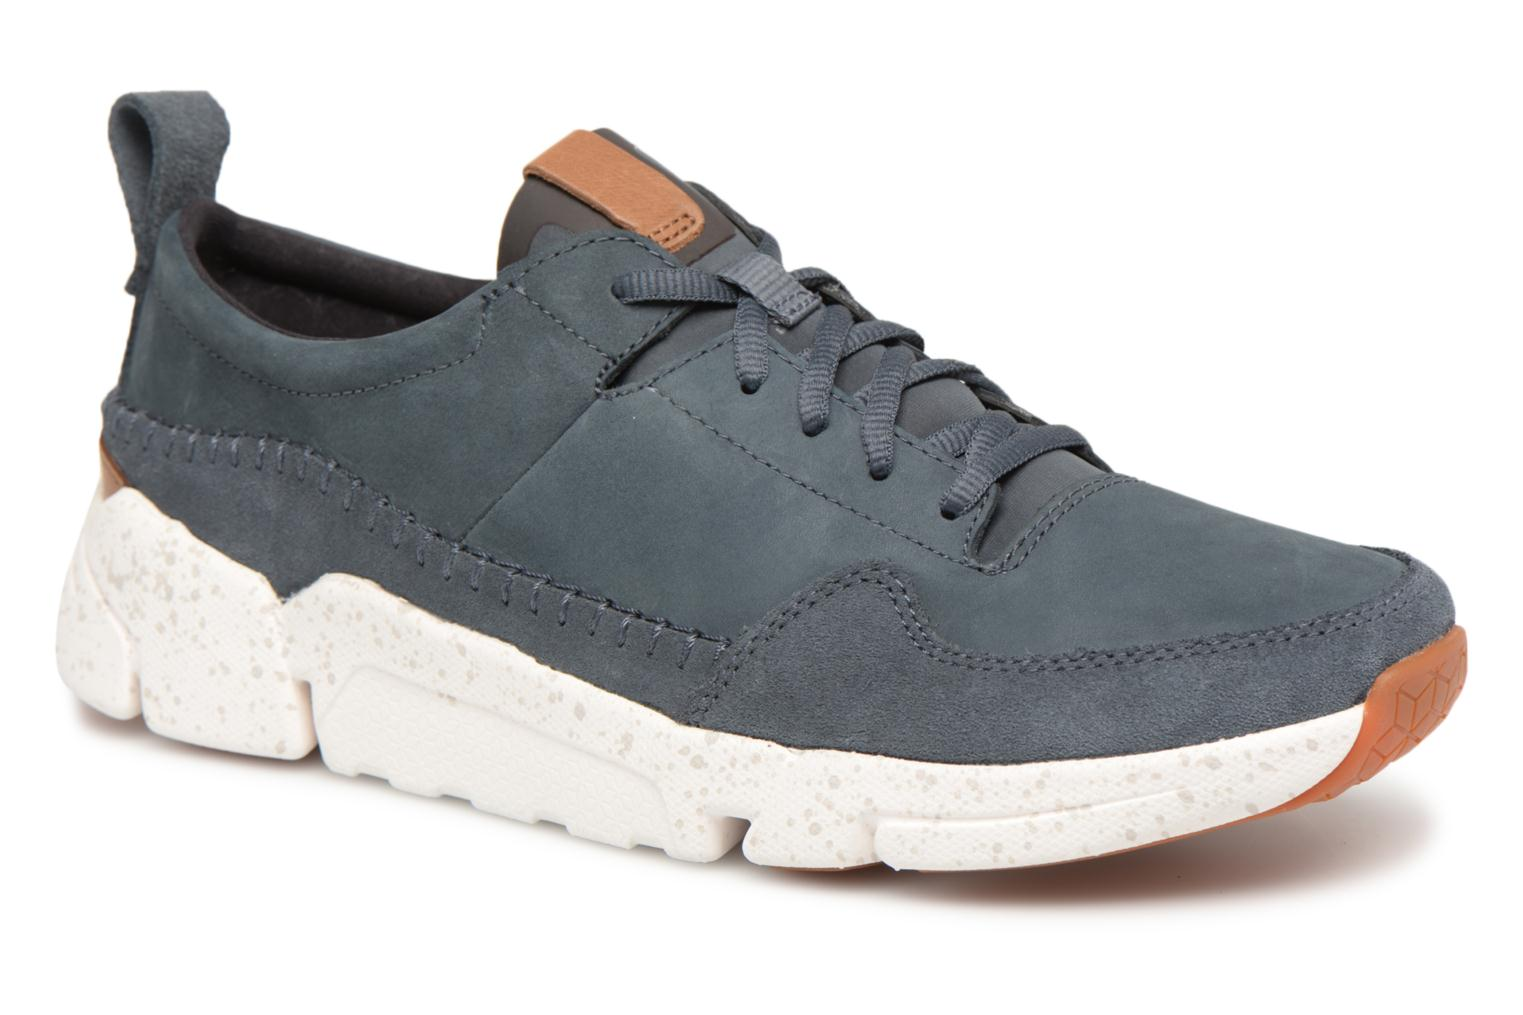 Marques Chaussure homme Clarks homme TriActive Run Blue nubuck